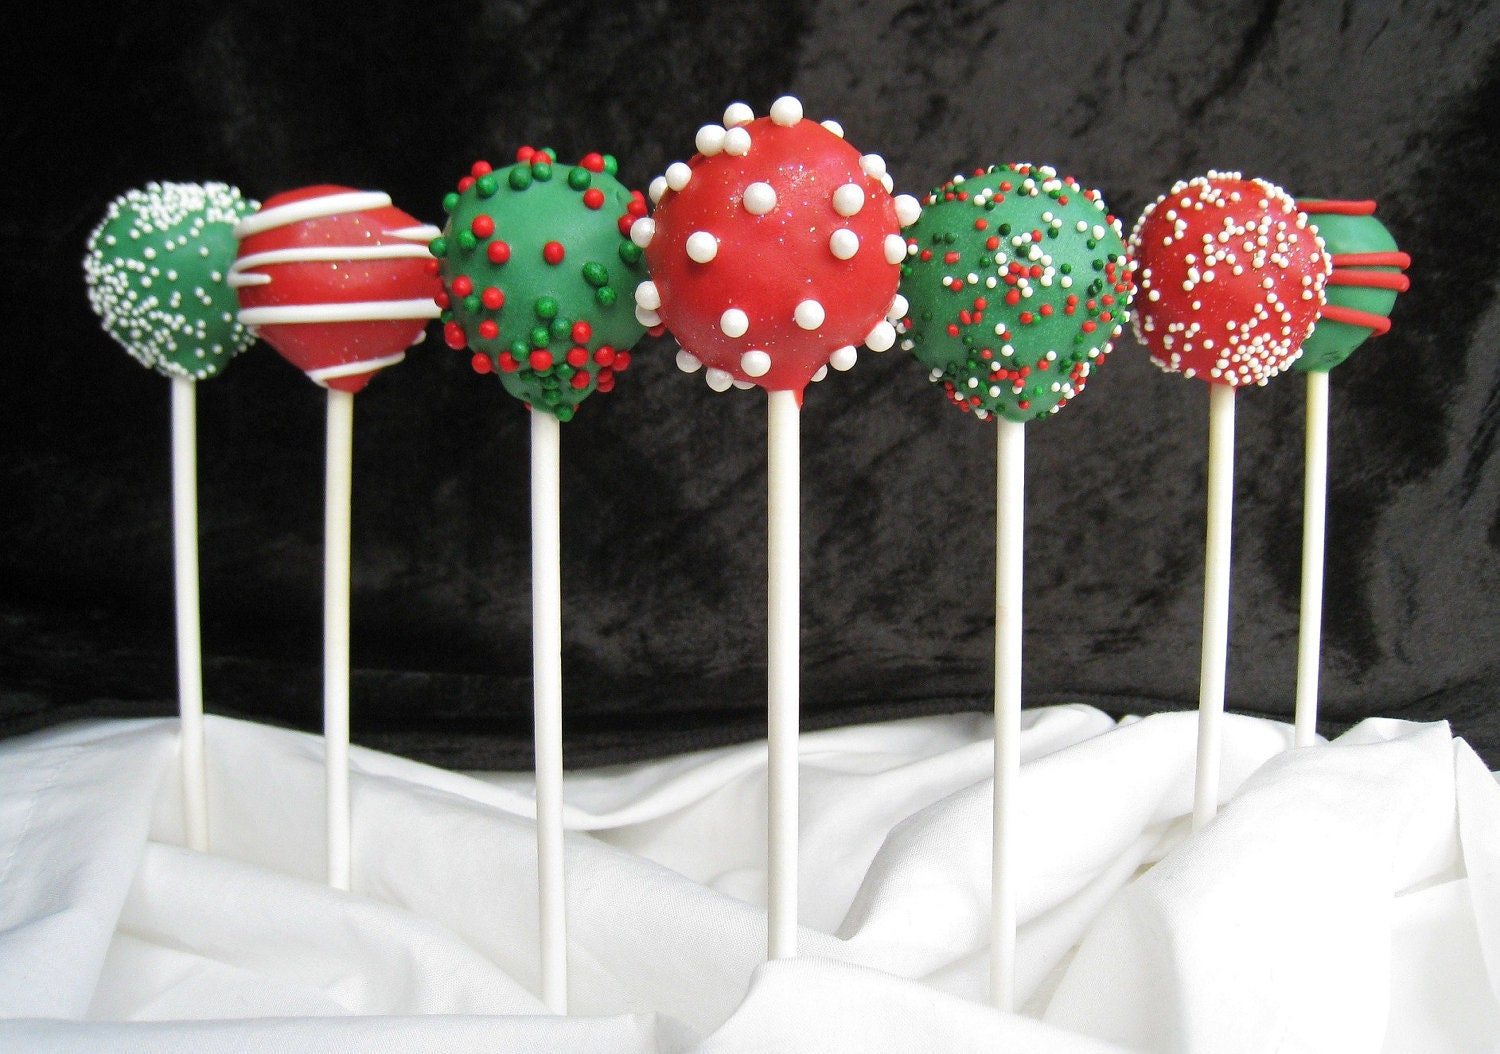 Cake Pops: Christmas Cake Pops Made with High Quality Ingredients.